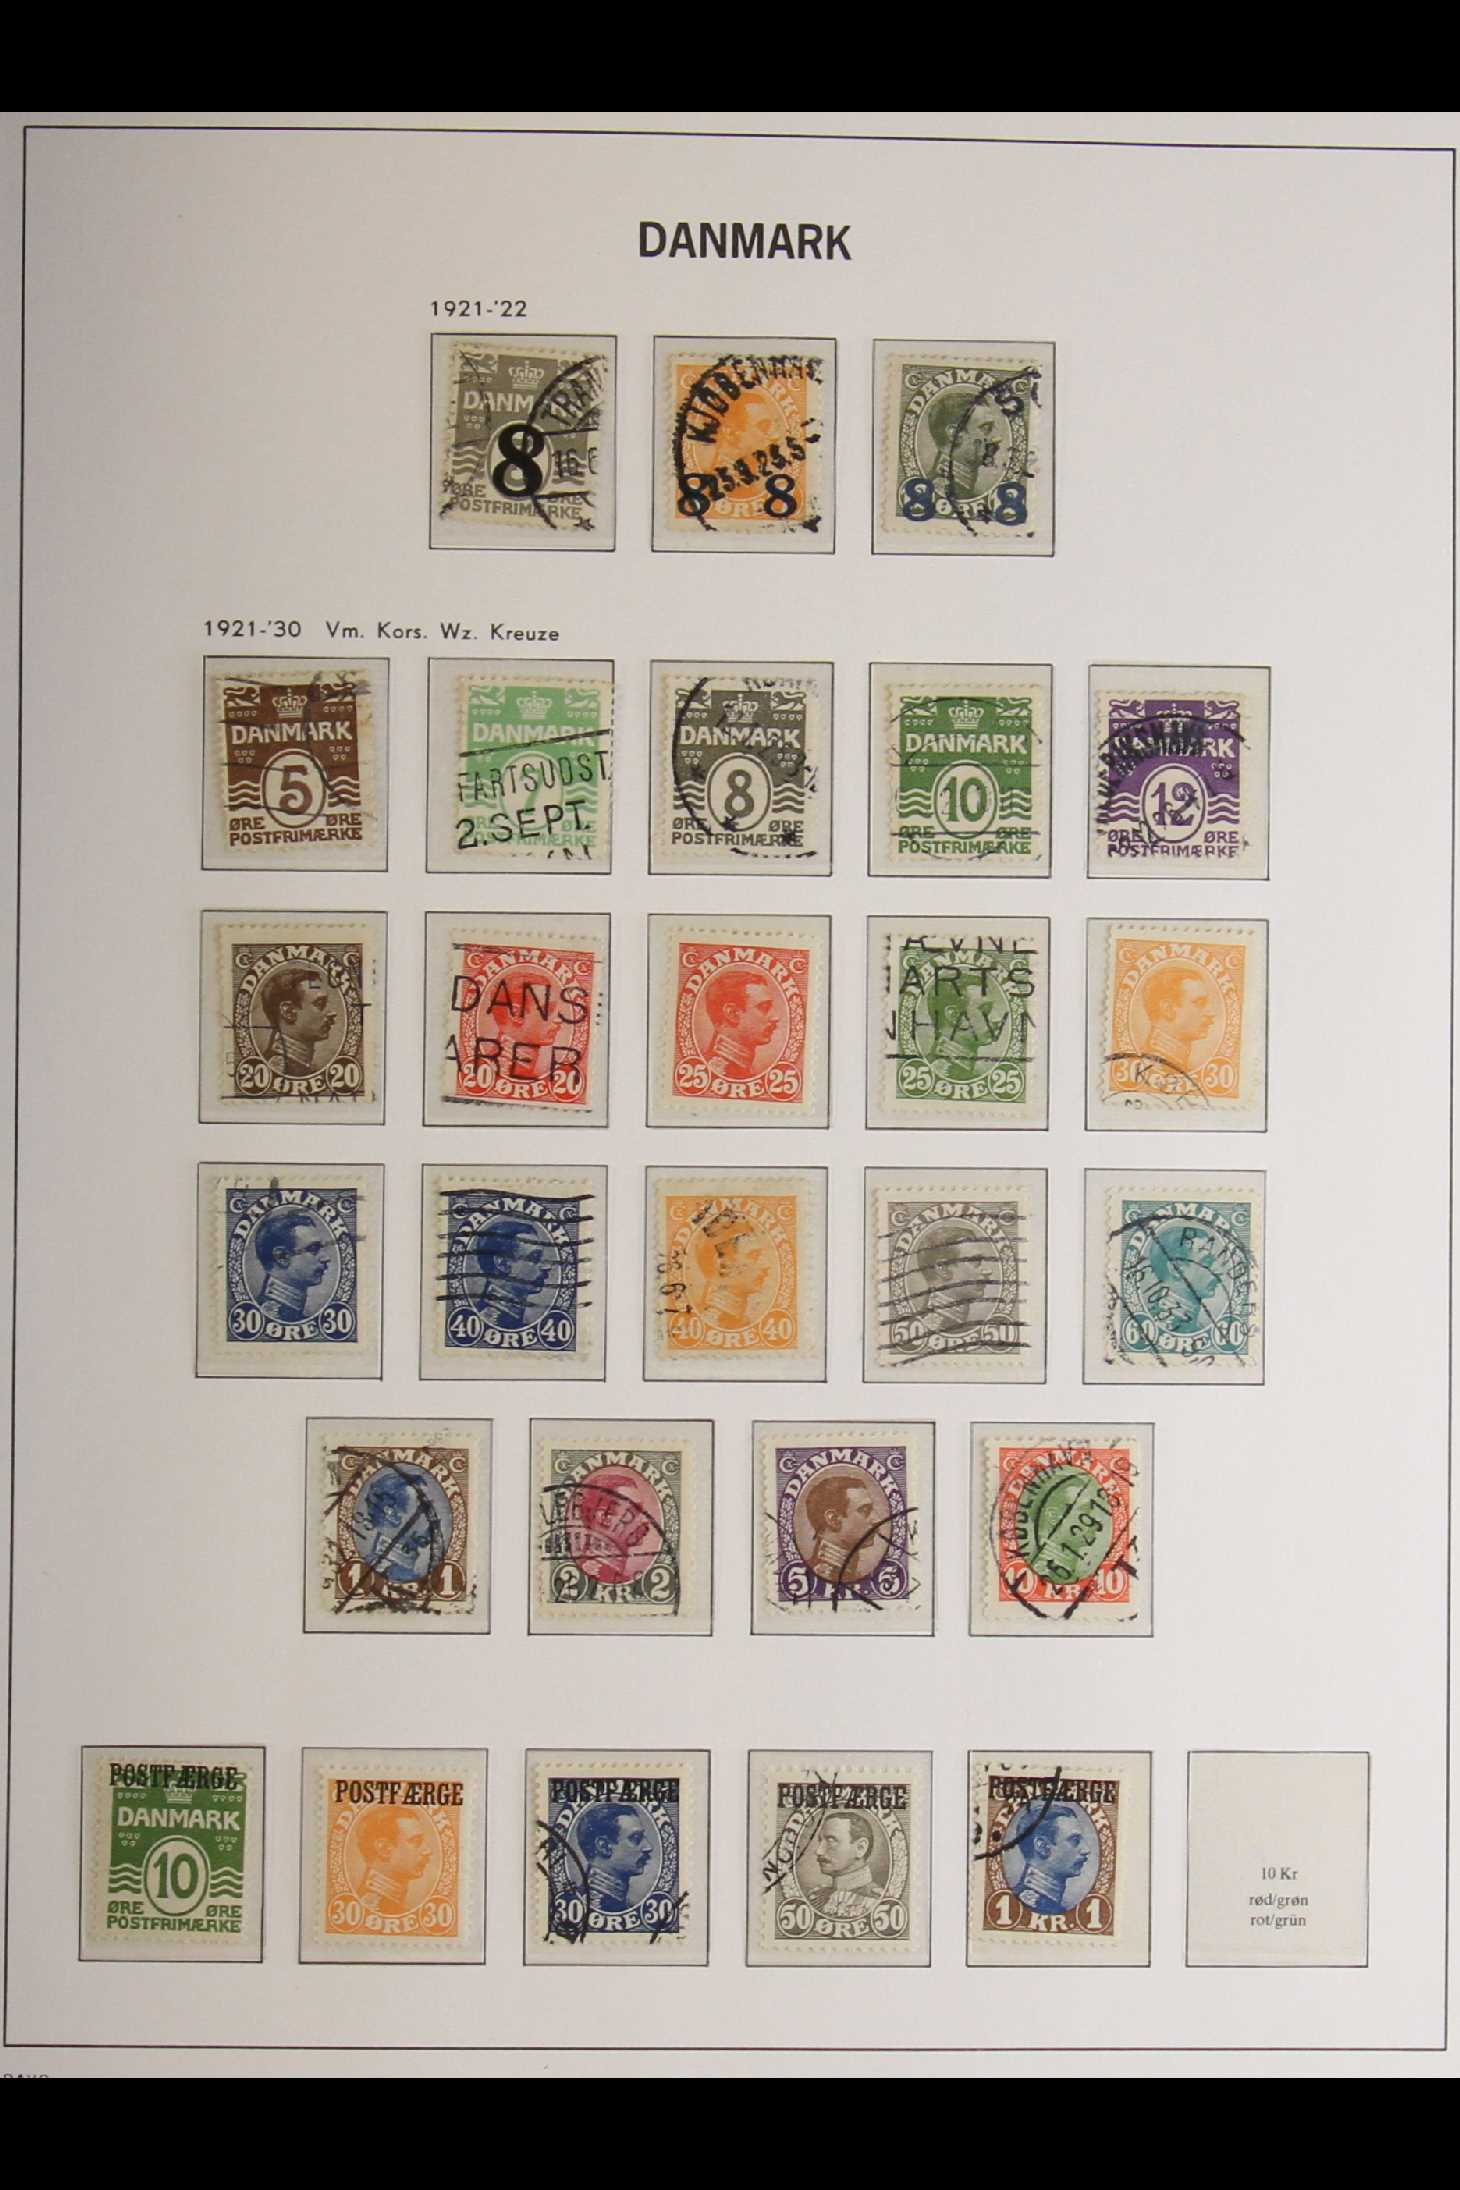 DENMARK 1882-1969 mint and used collection in an album incl. 1882 (small corner figures) 5 ore and - Image 4 of 15